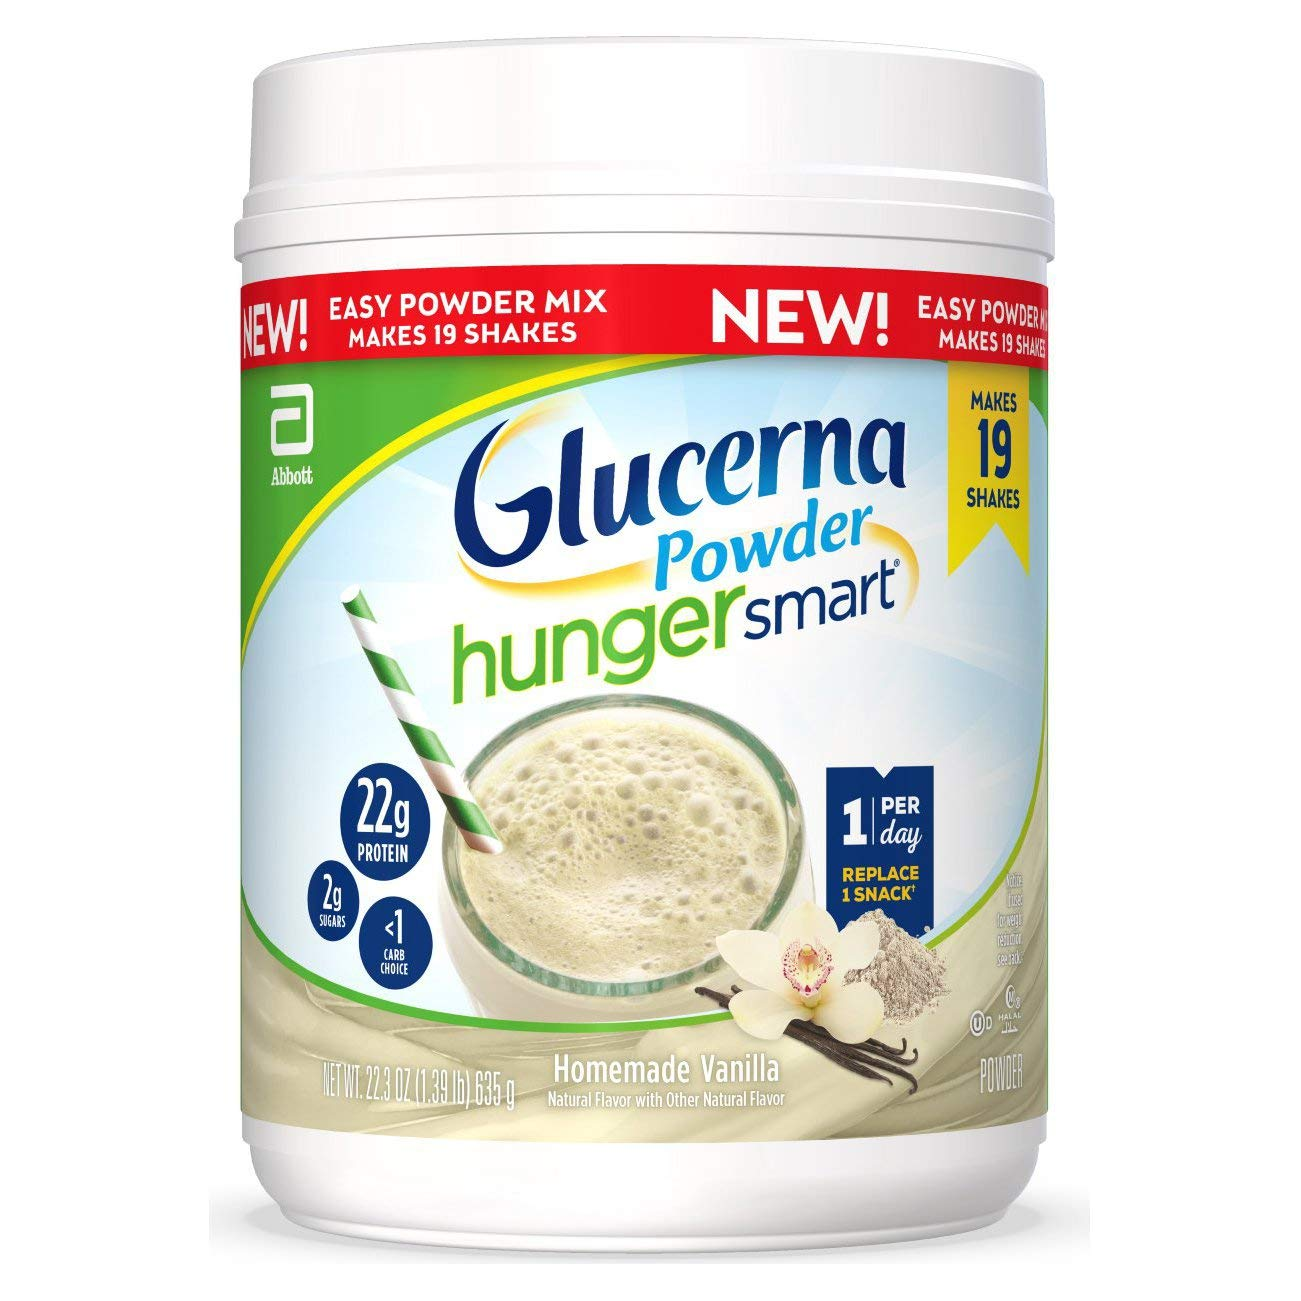 Glucerna Hunger Smart Powder, with 22g of Protein and 2g Sugars, Gluten-Free Protein Powder Mix for People with Diabetes, Homemade Vanilla, 22.3-oz Tub, 2 Count